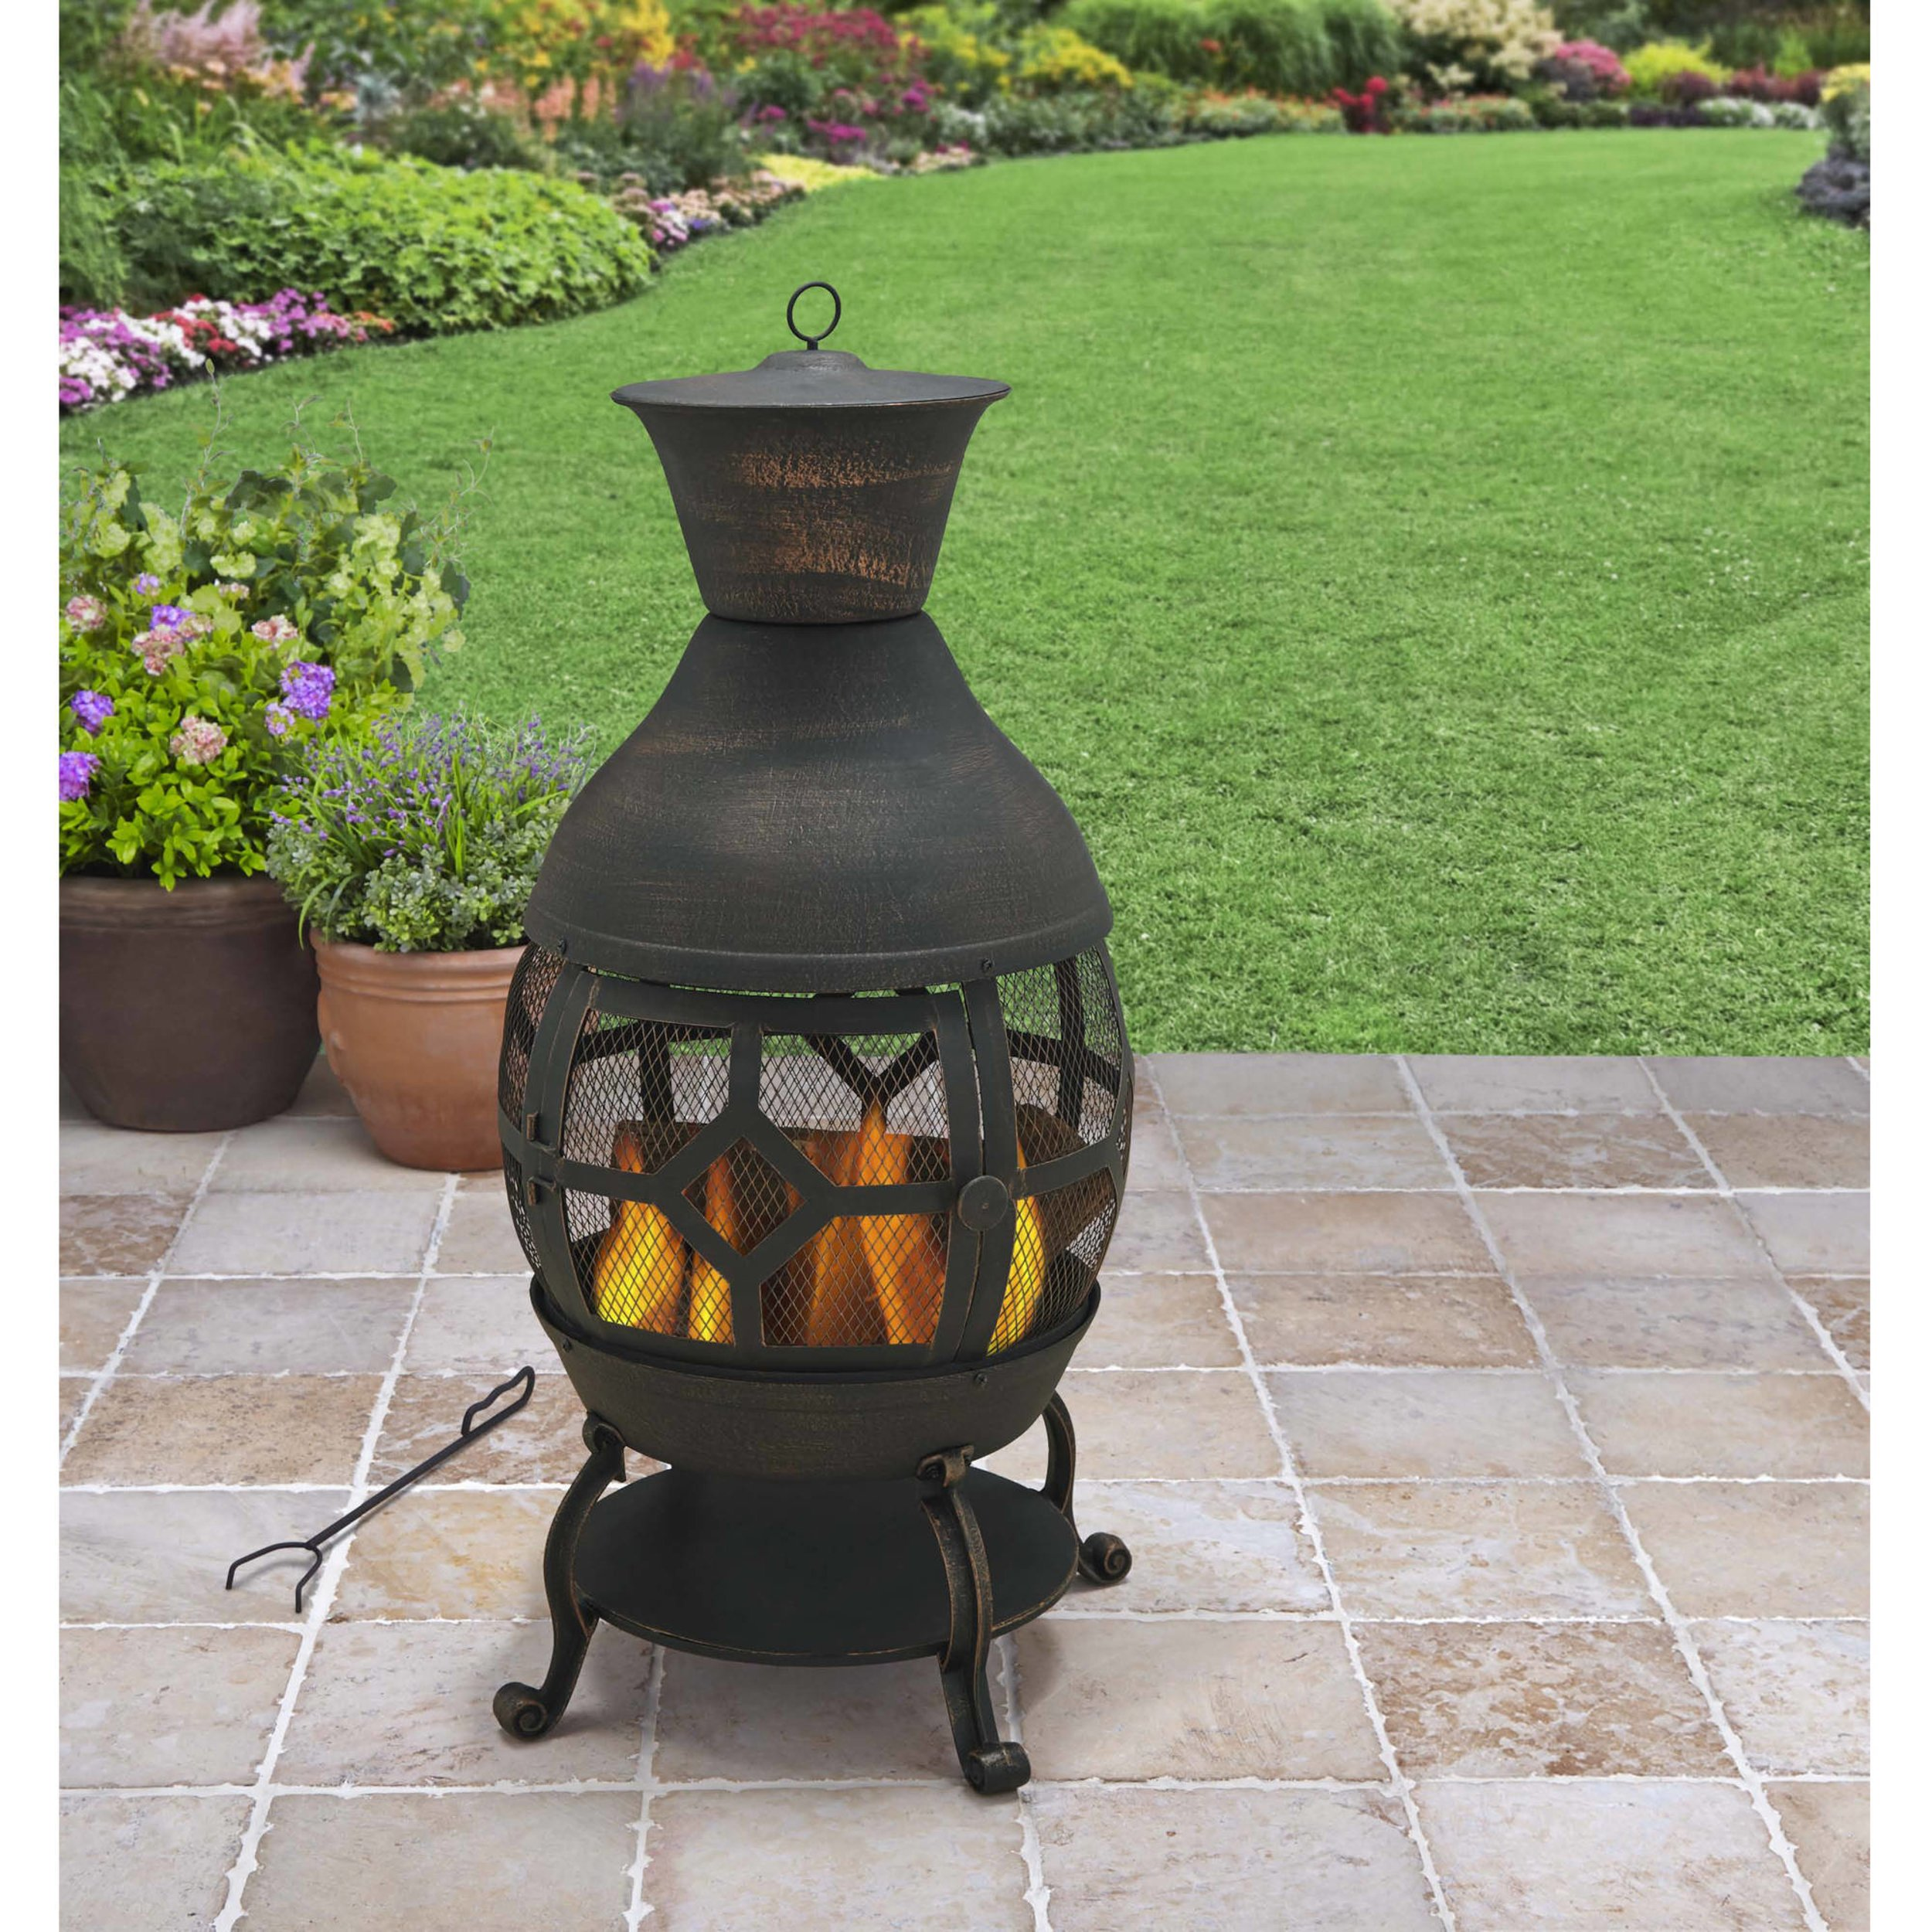 Durable Cast Iron Construction Big size Fireplace Chiminea, Antique Bronze by Better Homes & Gardens